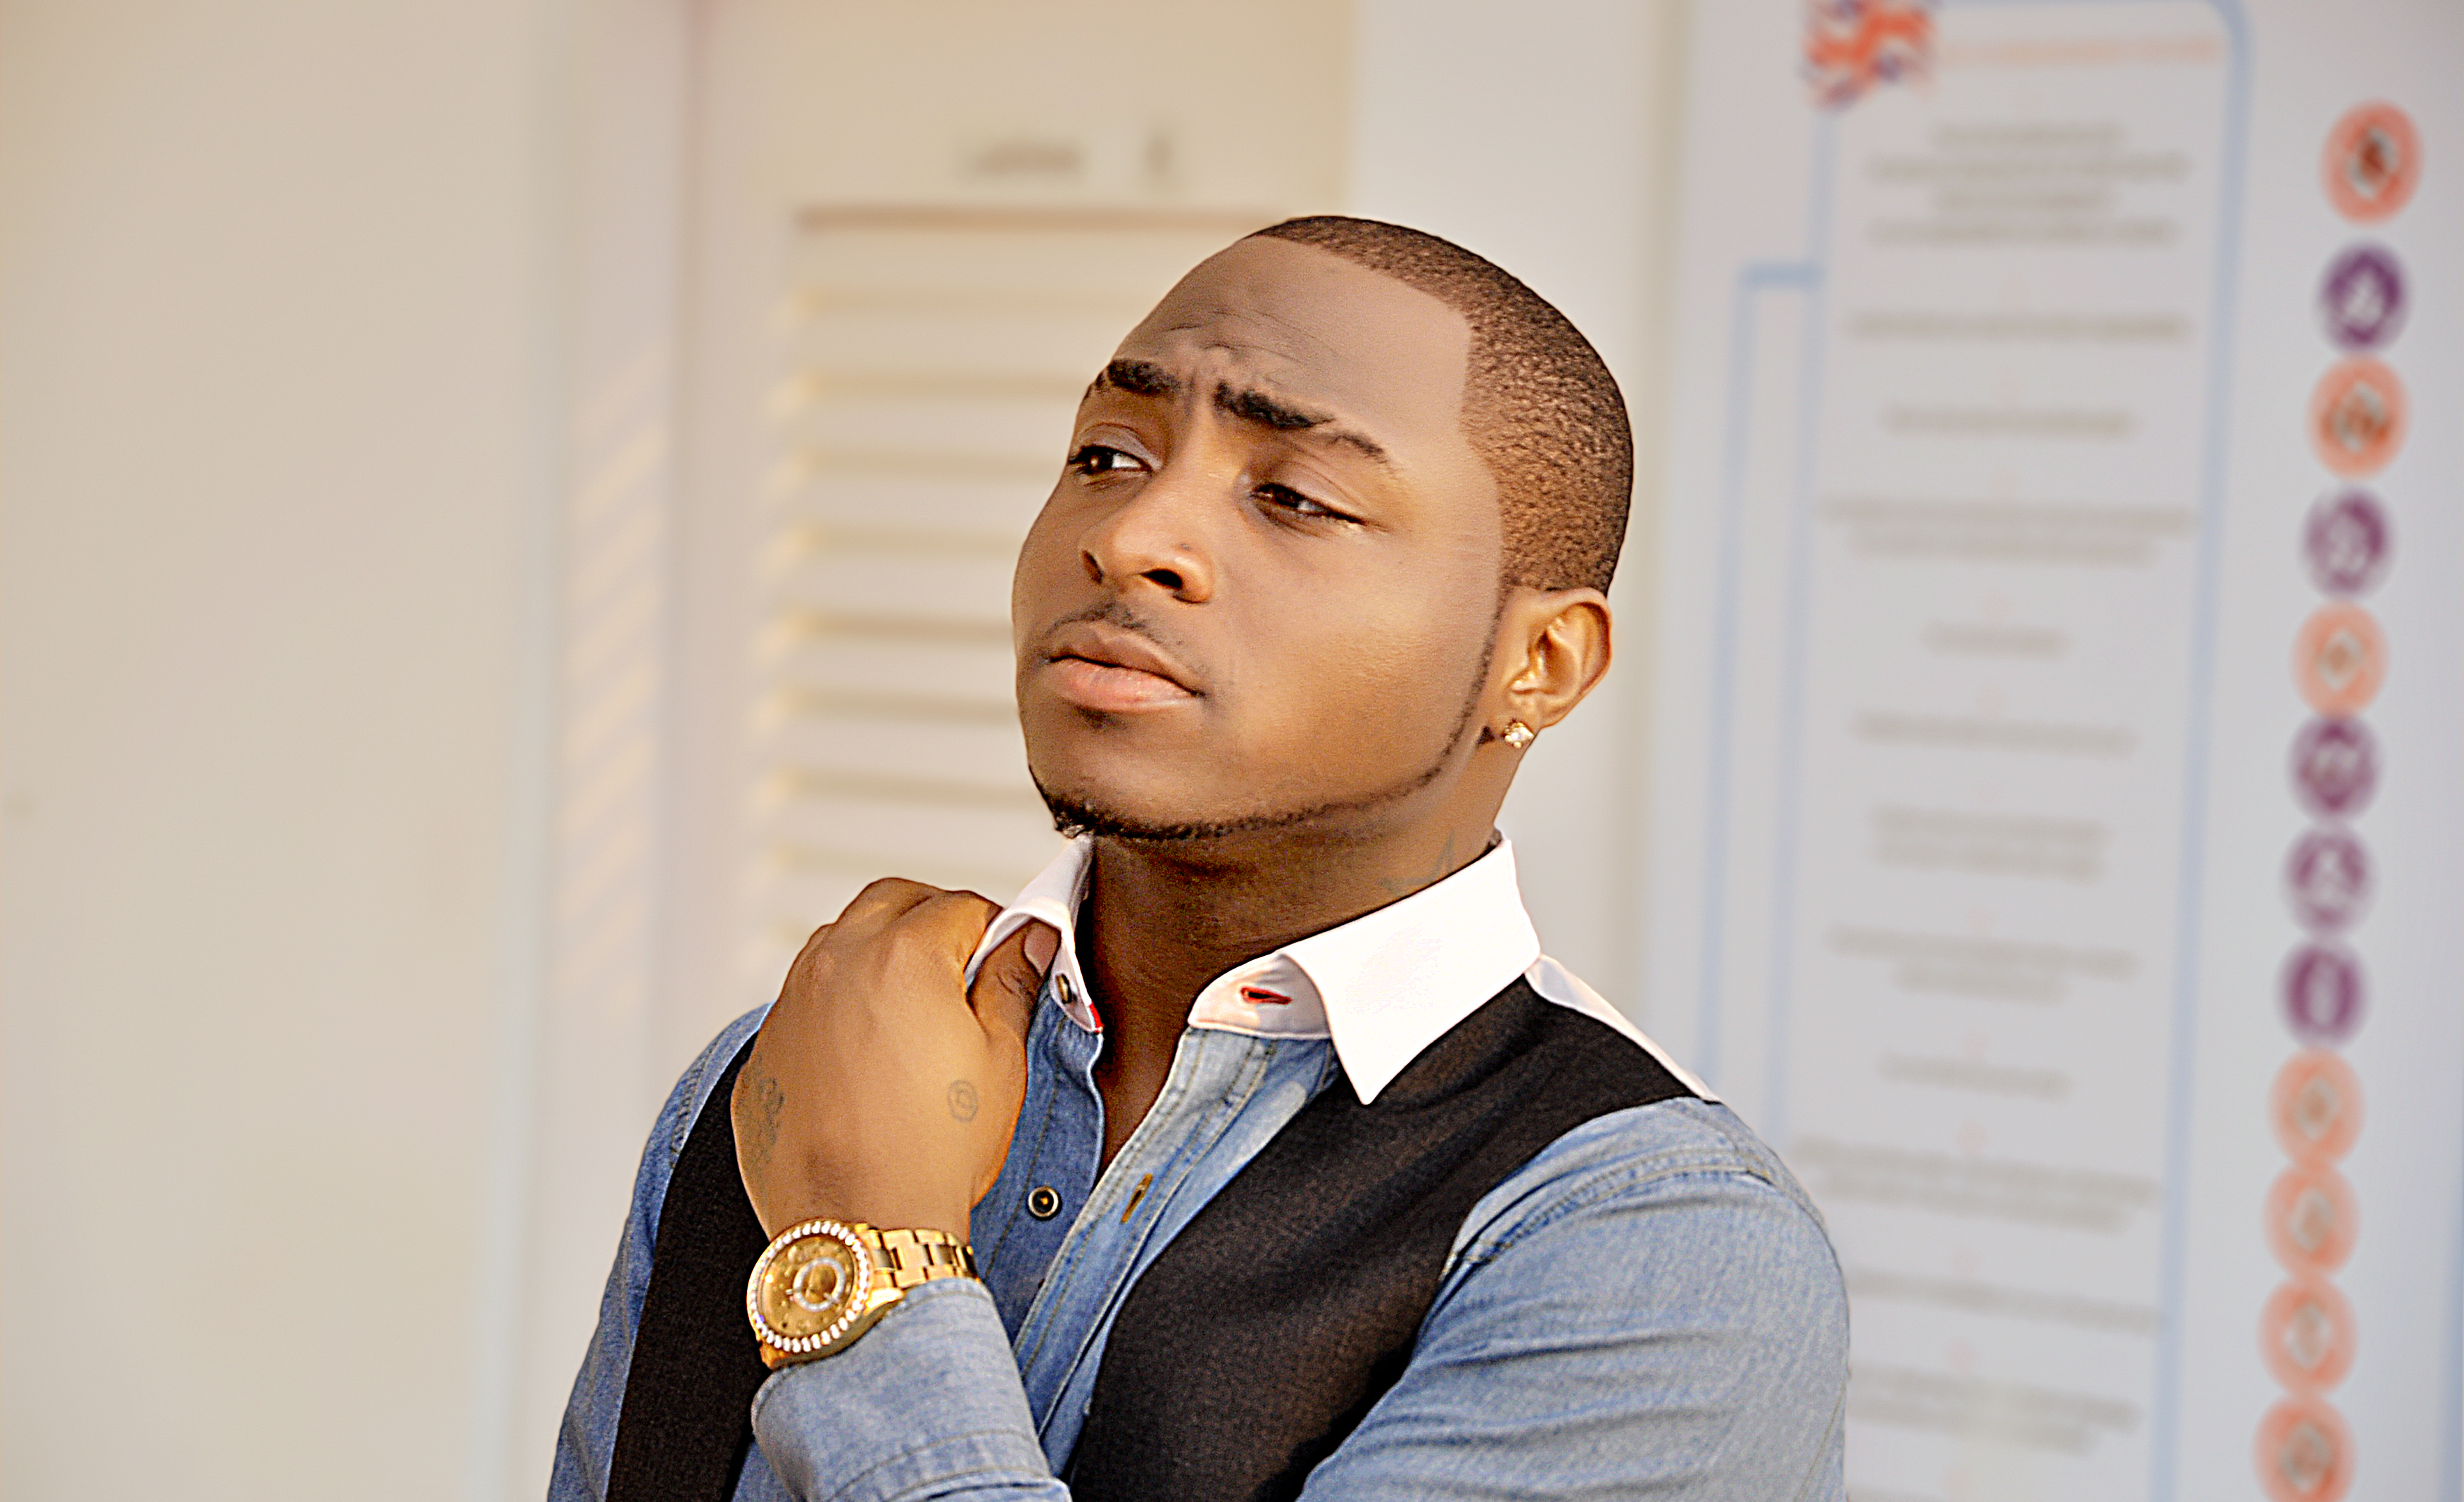 Davido Shares Childhood Photo With His Mum And DadDavido Shares Childhood Photo With His Mum And Dad